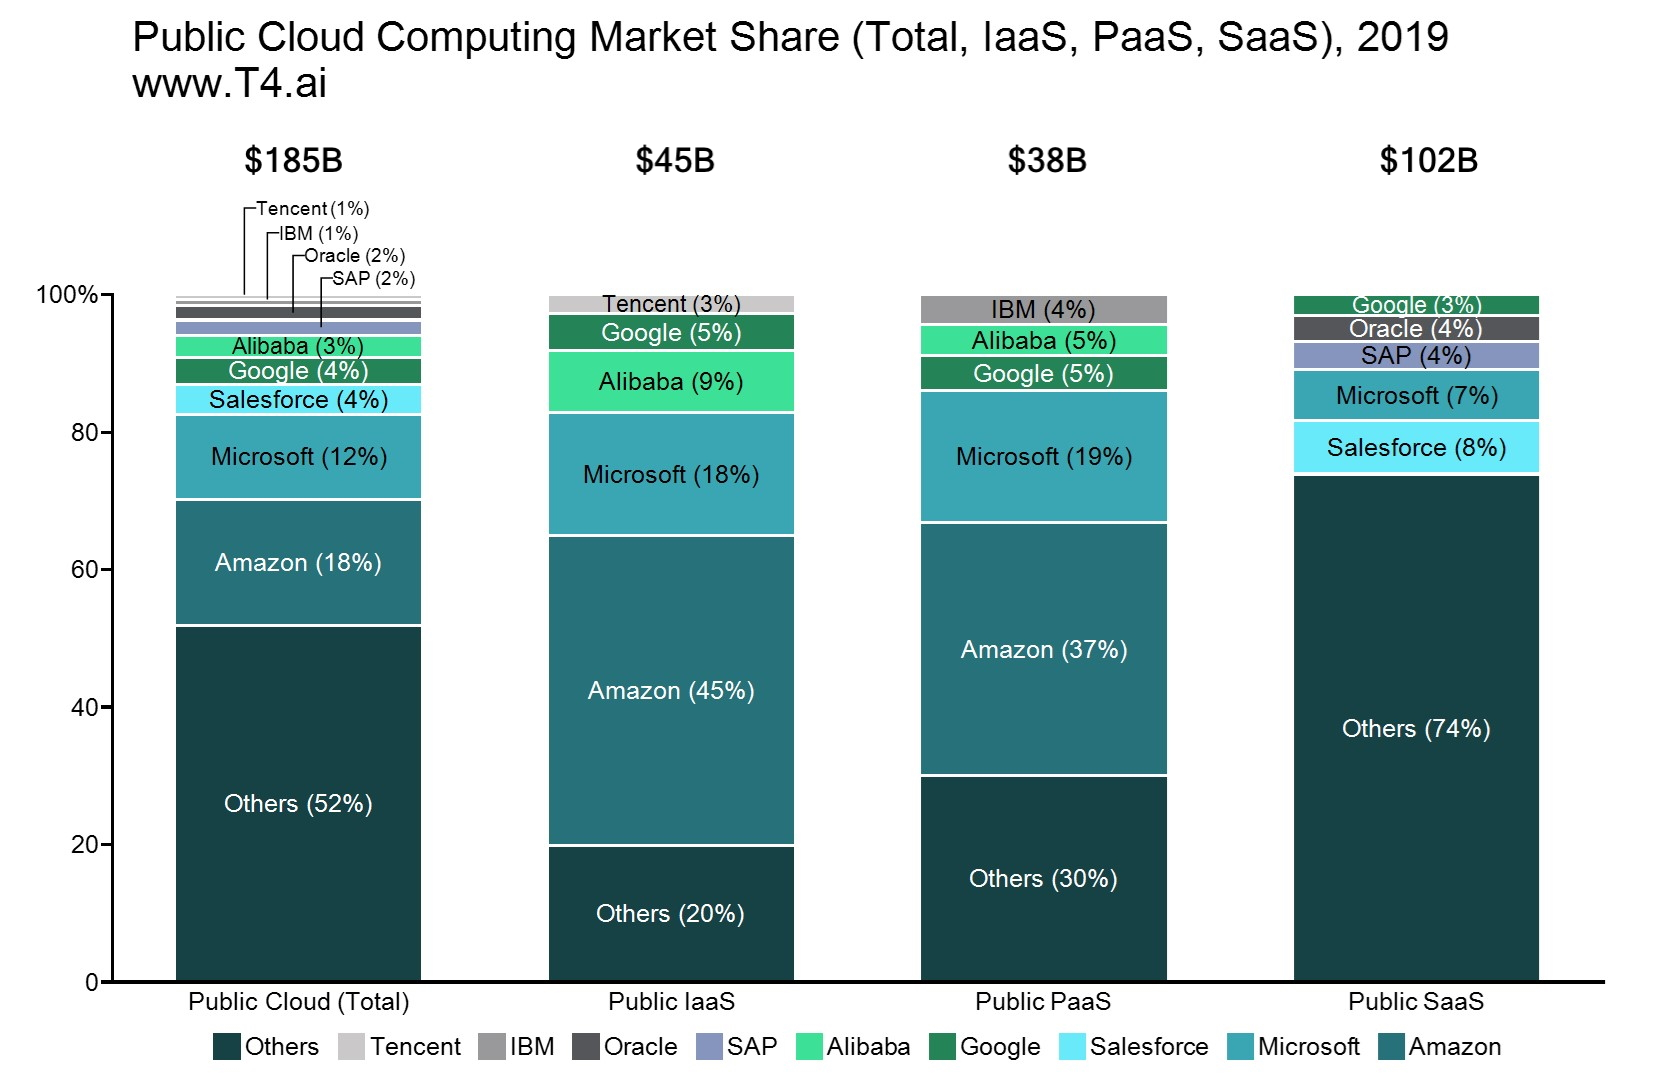 Public Cloud Computing Market Share